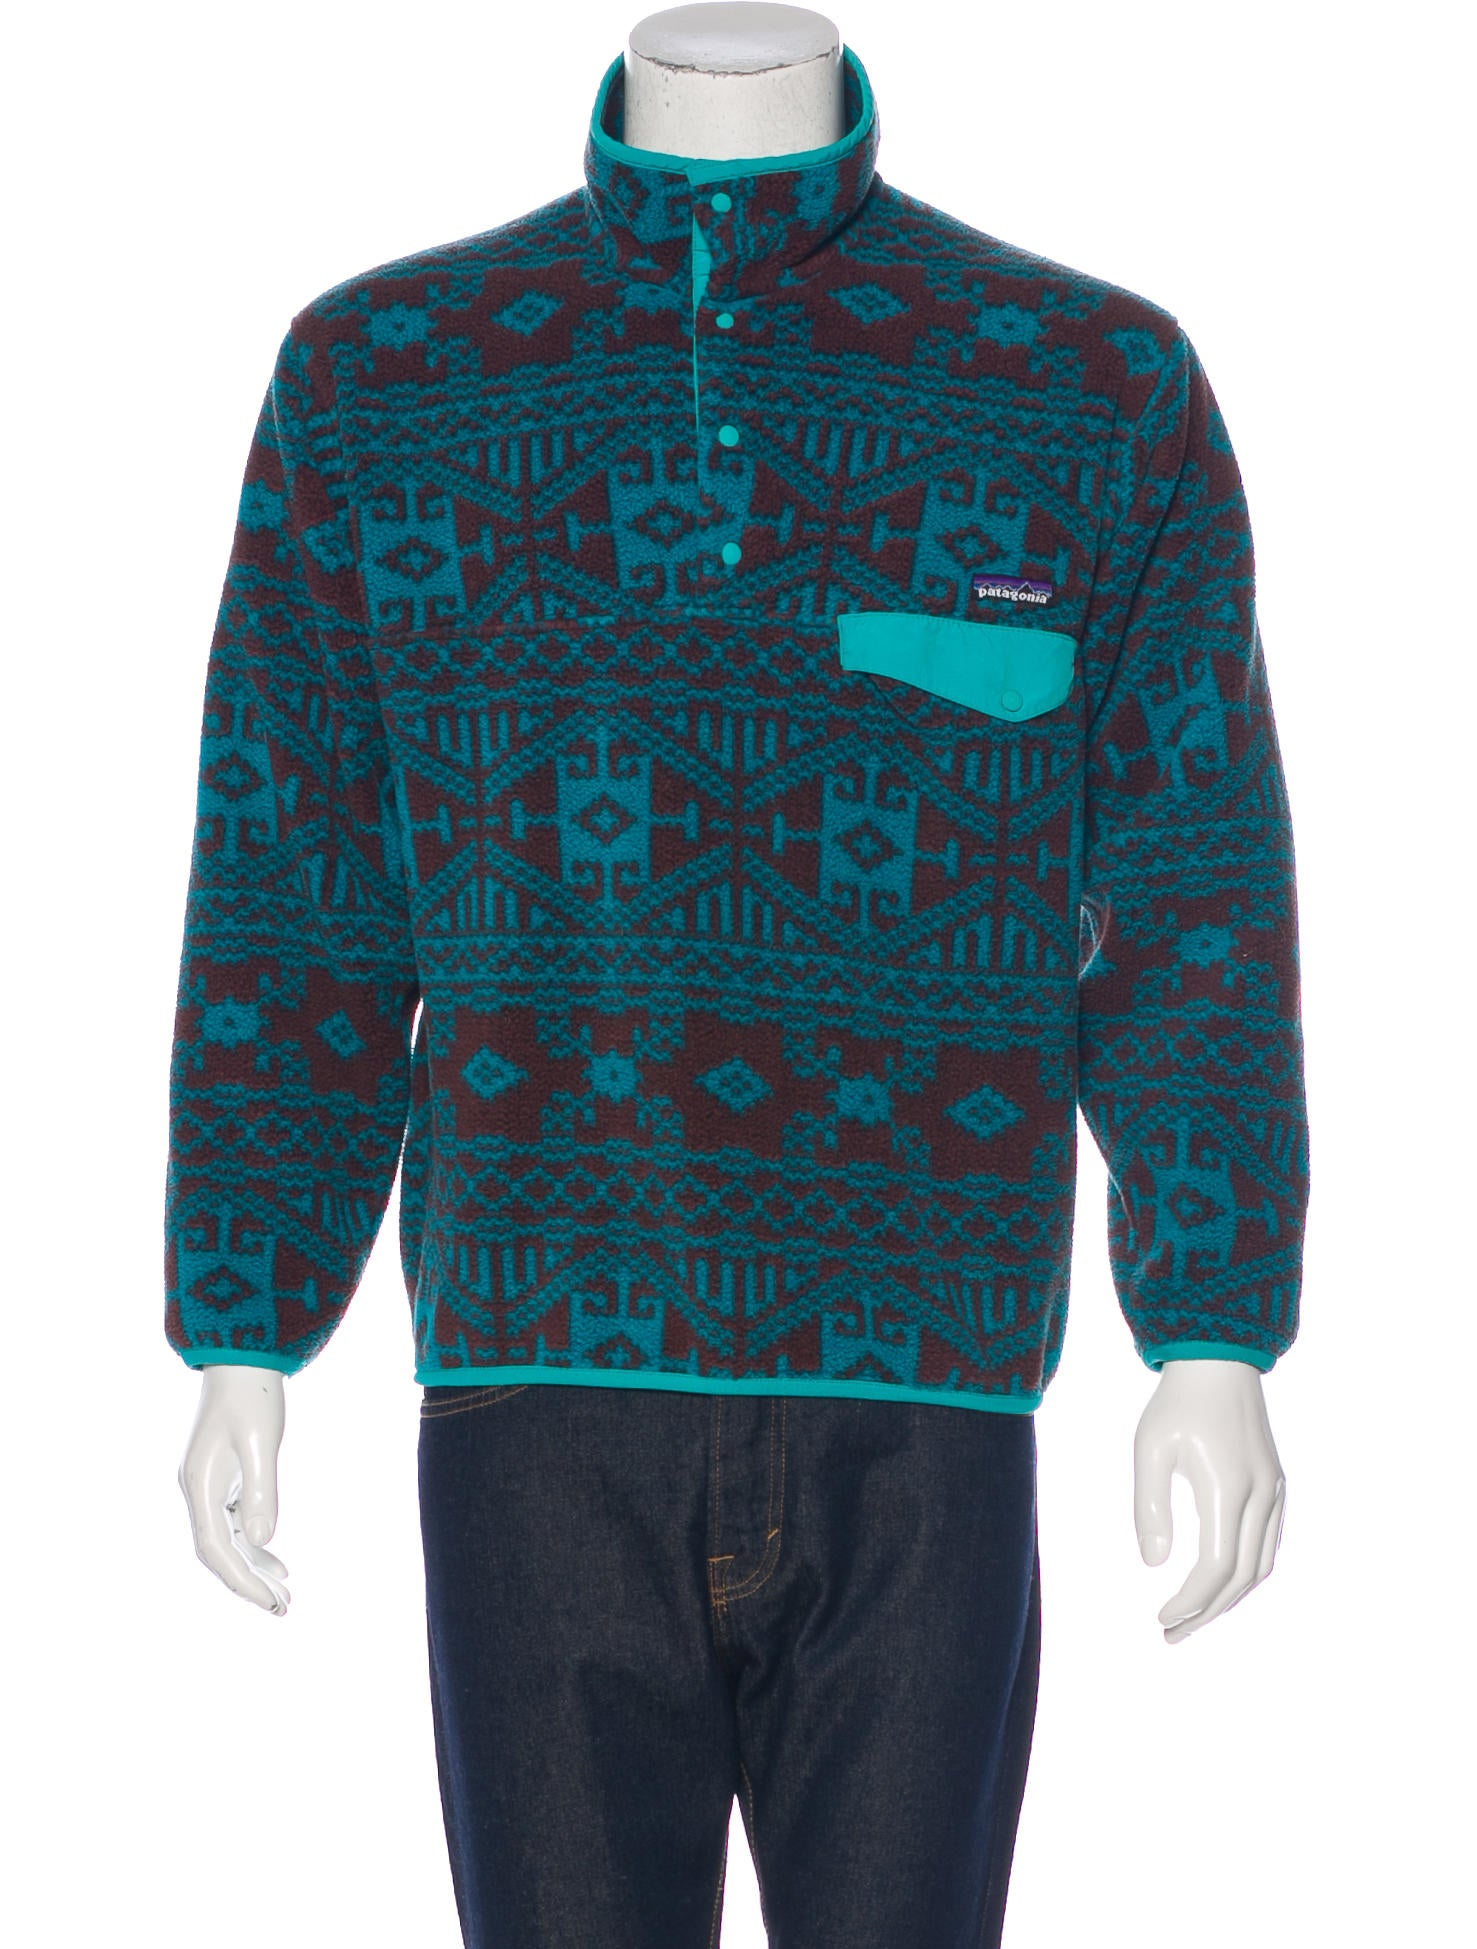 Patterned Patagonia Fleece Best Design